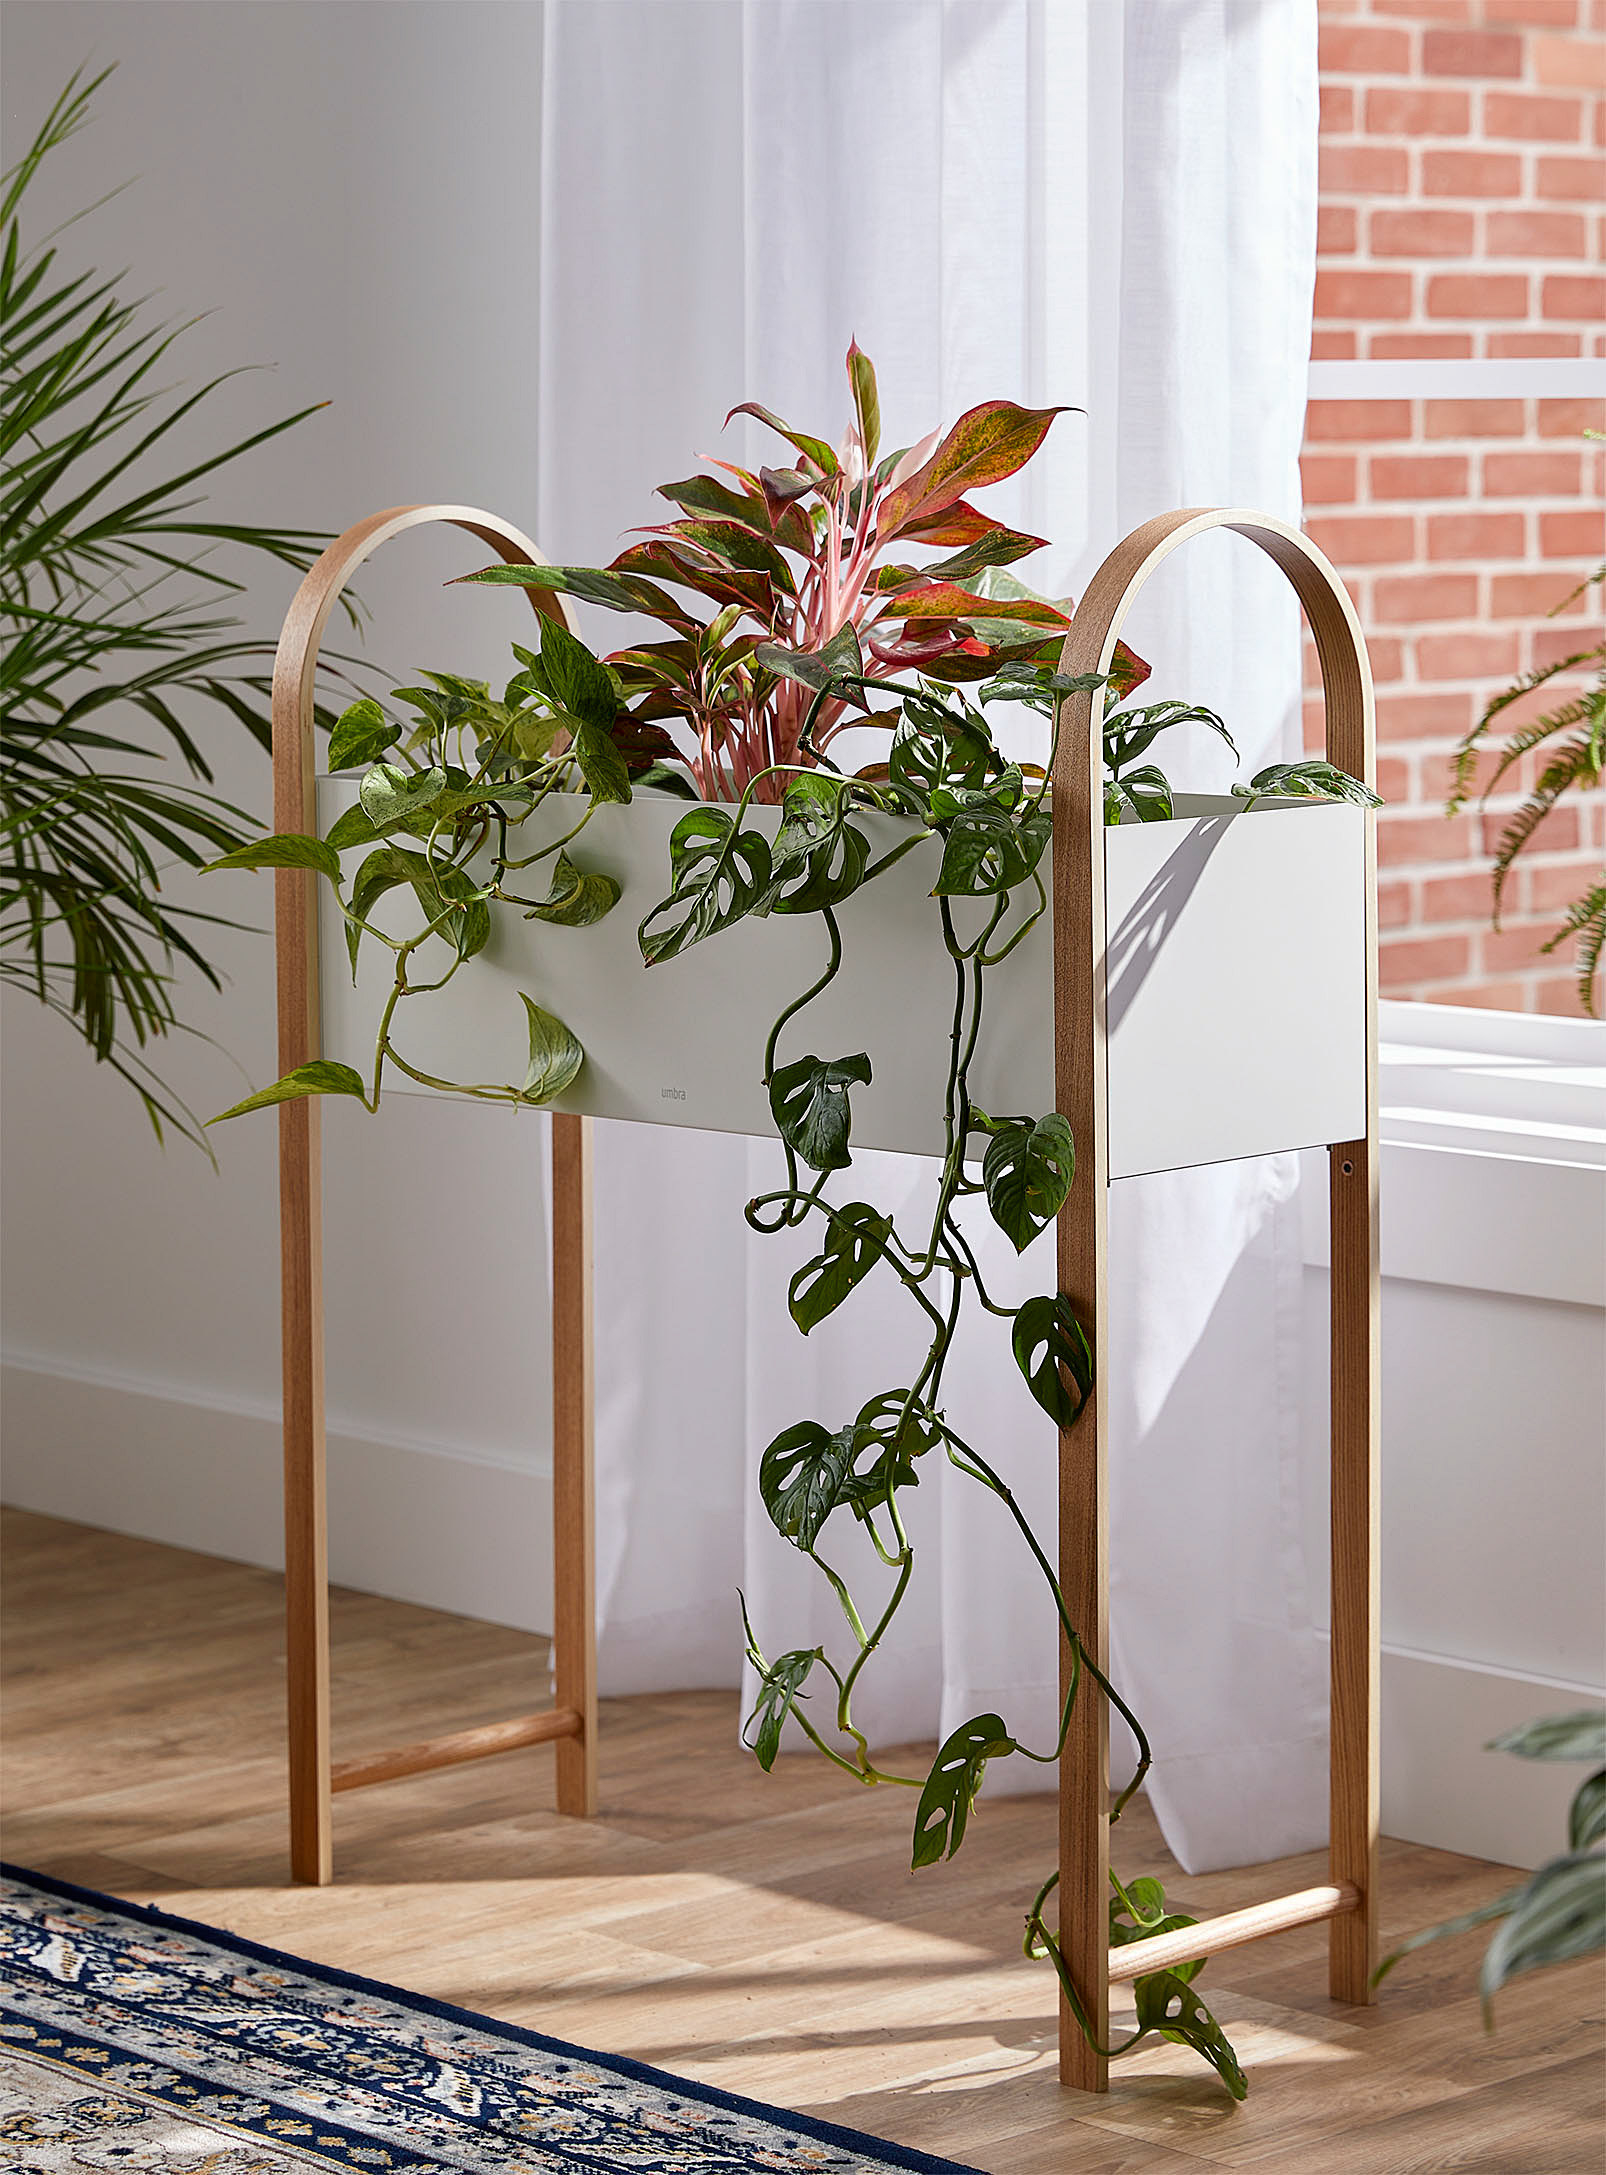 An oblong plant stand filled with leafy vines